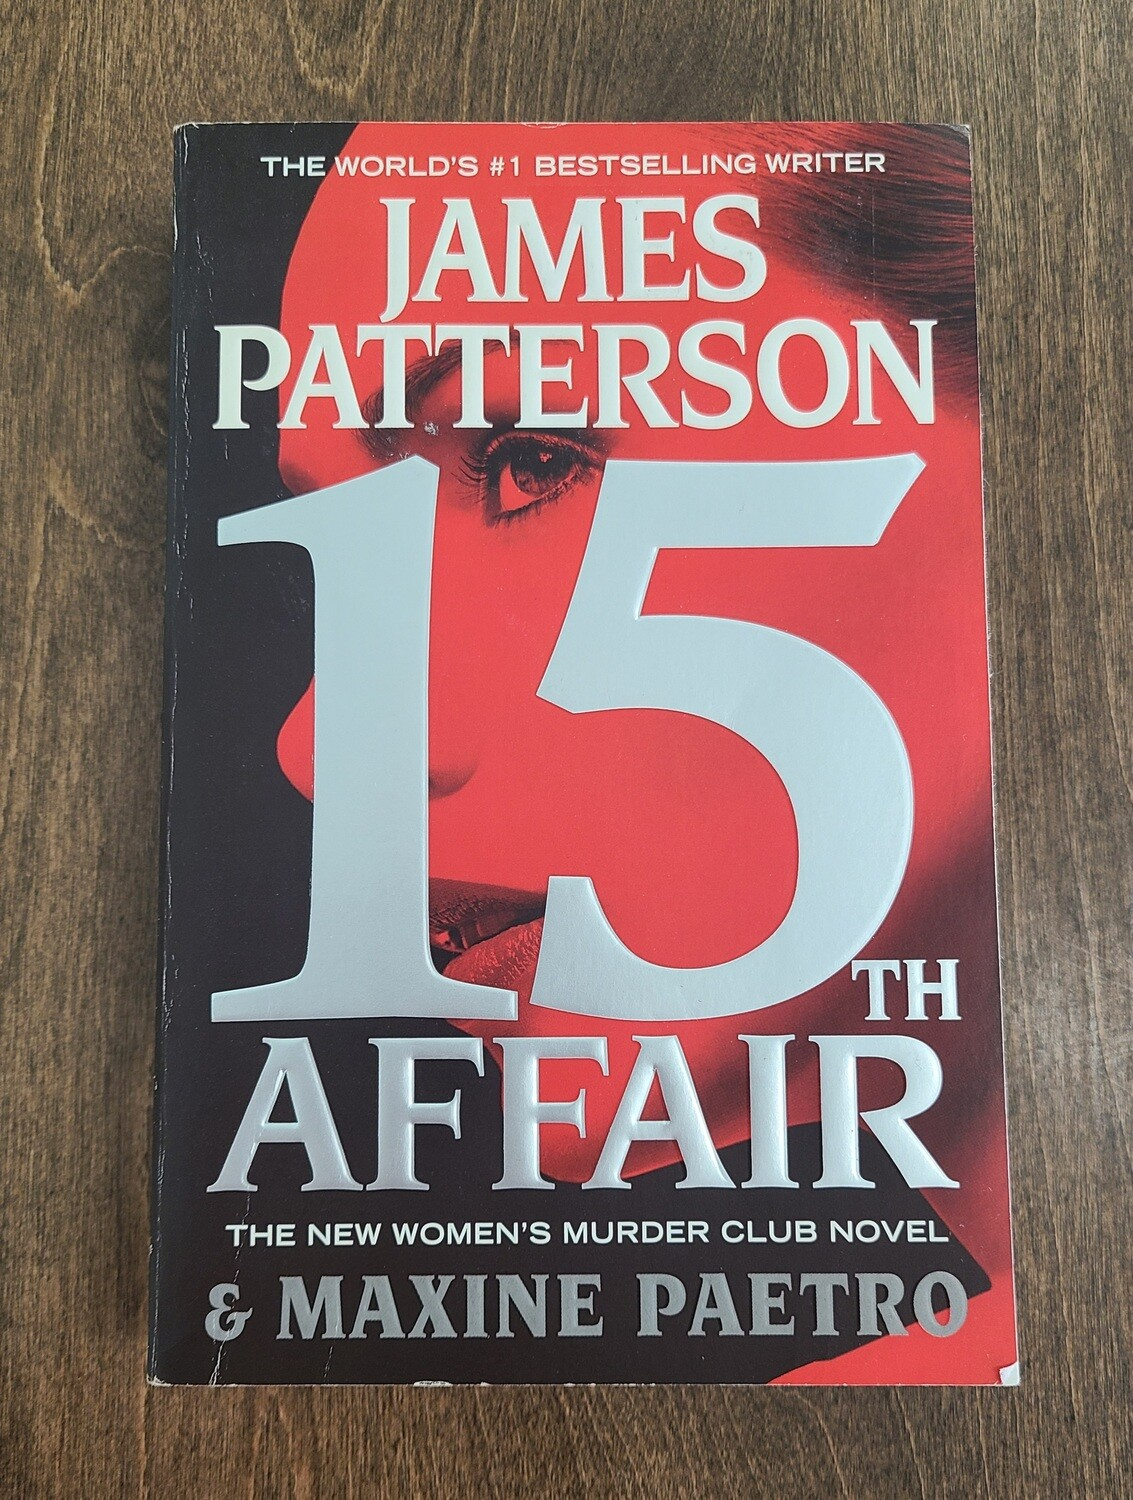 15th Affair by James Patterson - Paperback